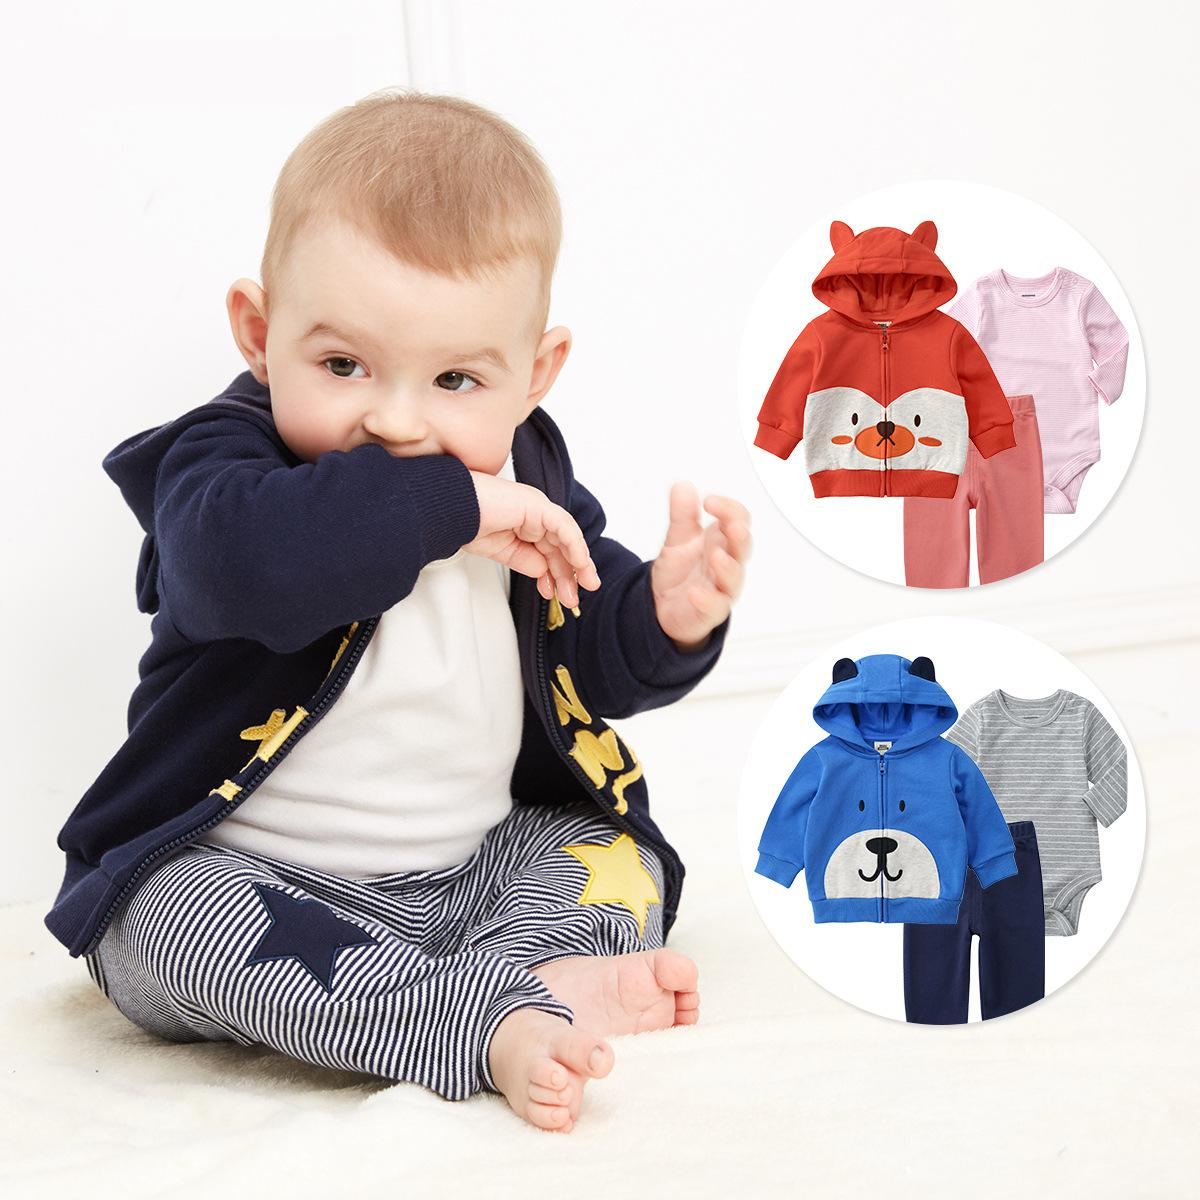 8b330b226 2019 Korean Newborn Baby boy and girl Clothes bodysuit Baby Three-piece  suit cute pure Cotton Coat infant clothing ~ Best Deal June 2019